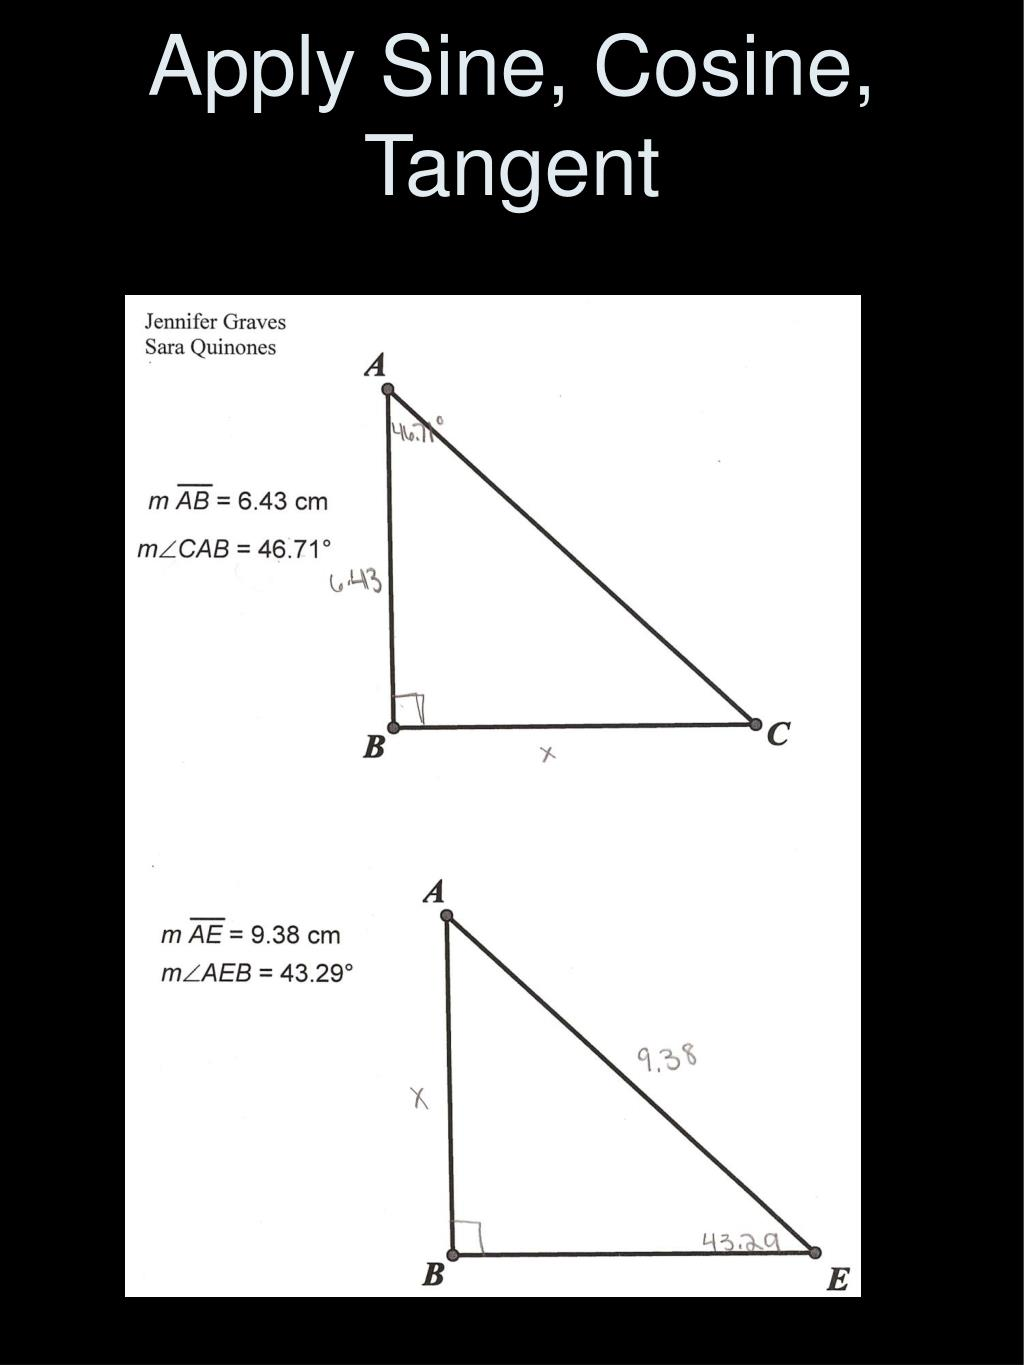 Apply Sine, Cosine, Tangent